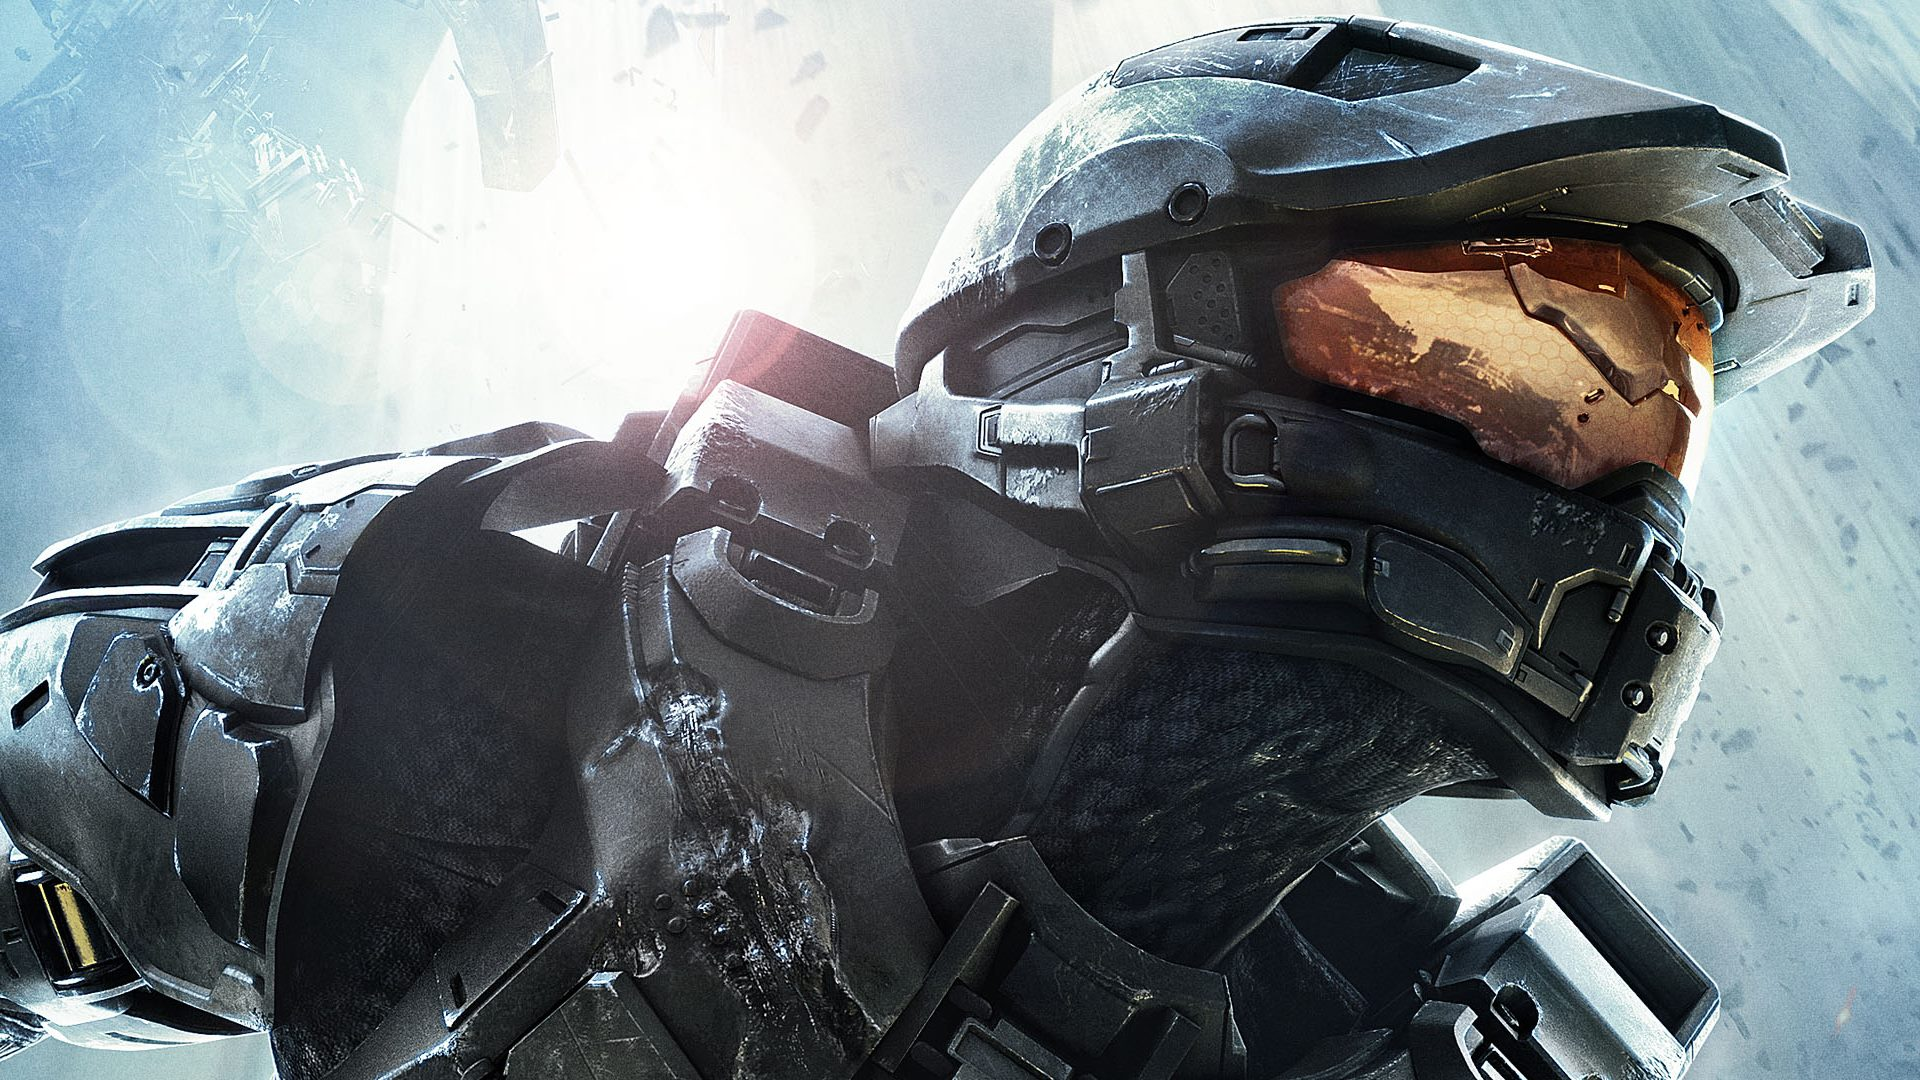 Legendary ex-Halo composer says that he wouldn't mind creating music for a Master Chief Smash Bros. appearance screenshot